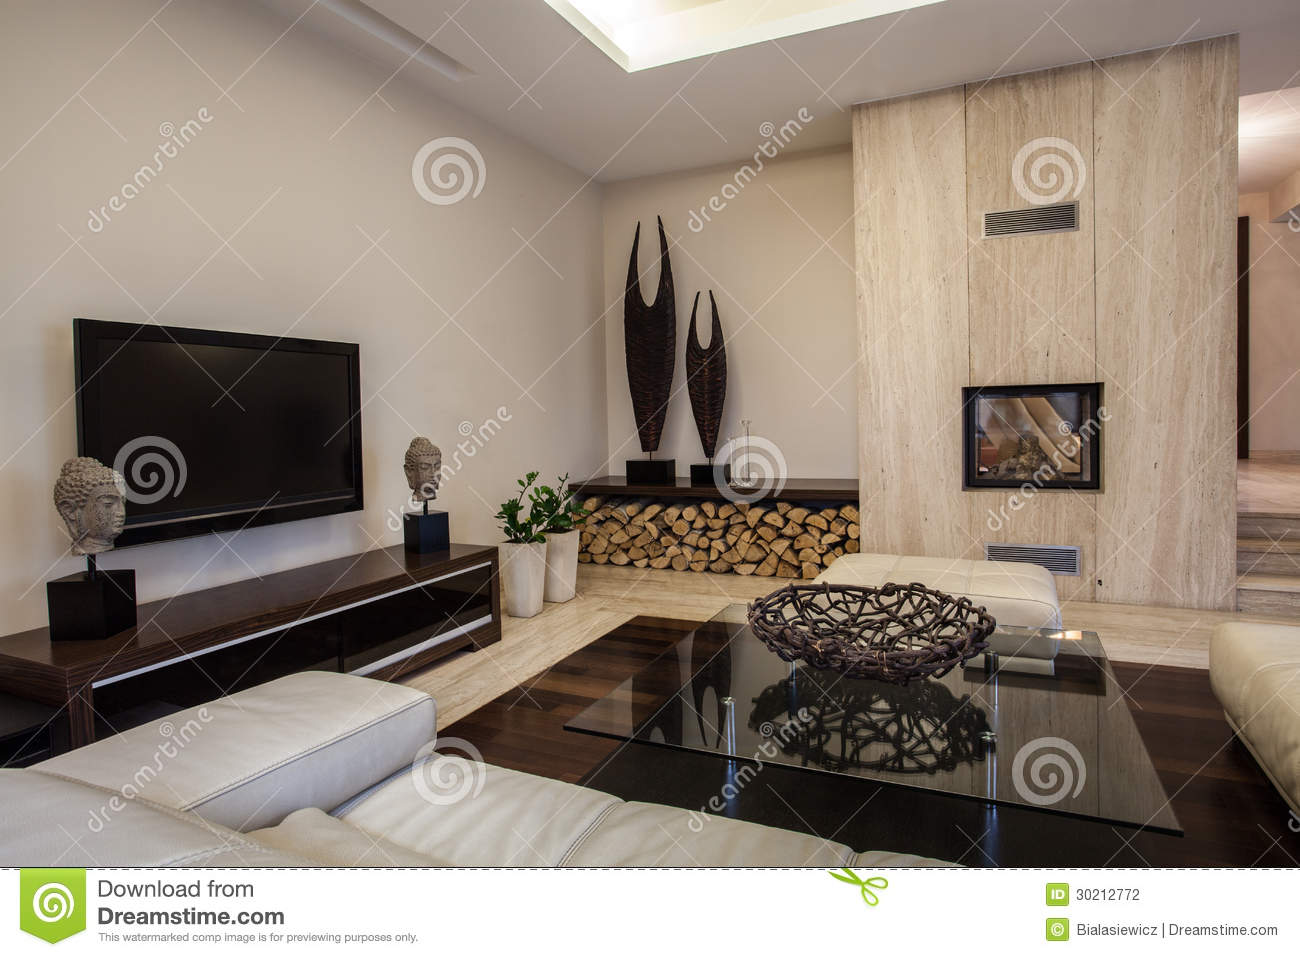 travertine house: braided decoration interior stock photography